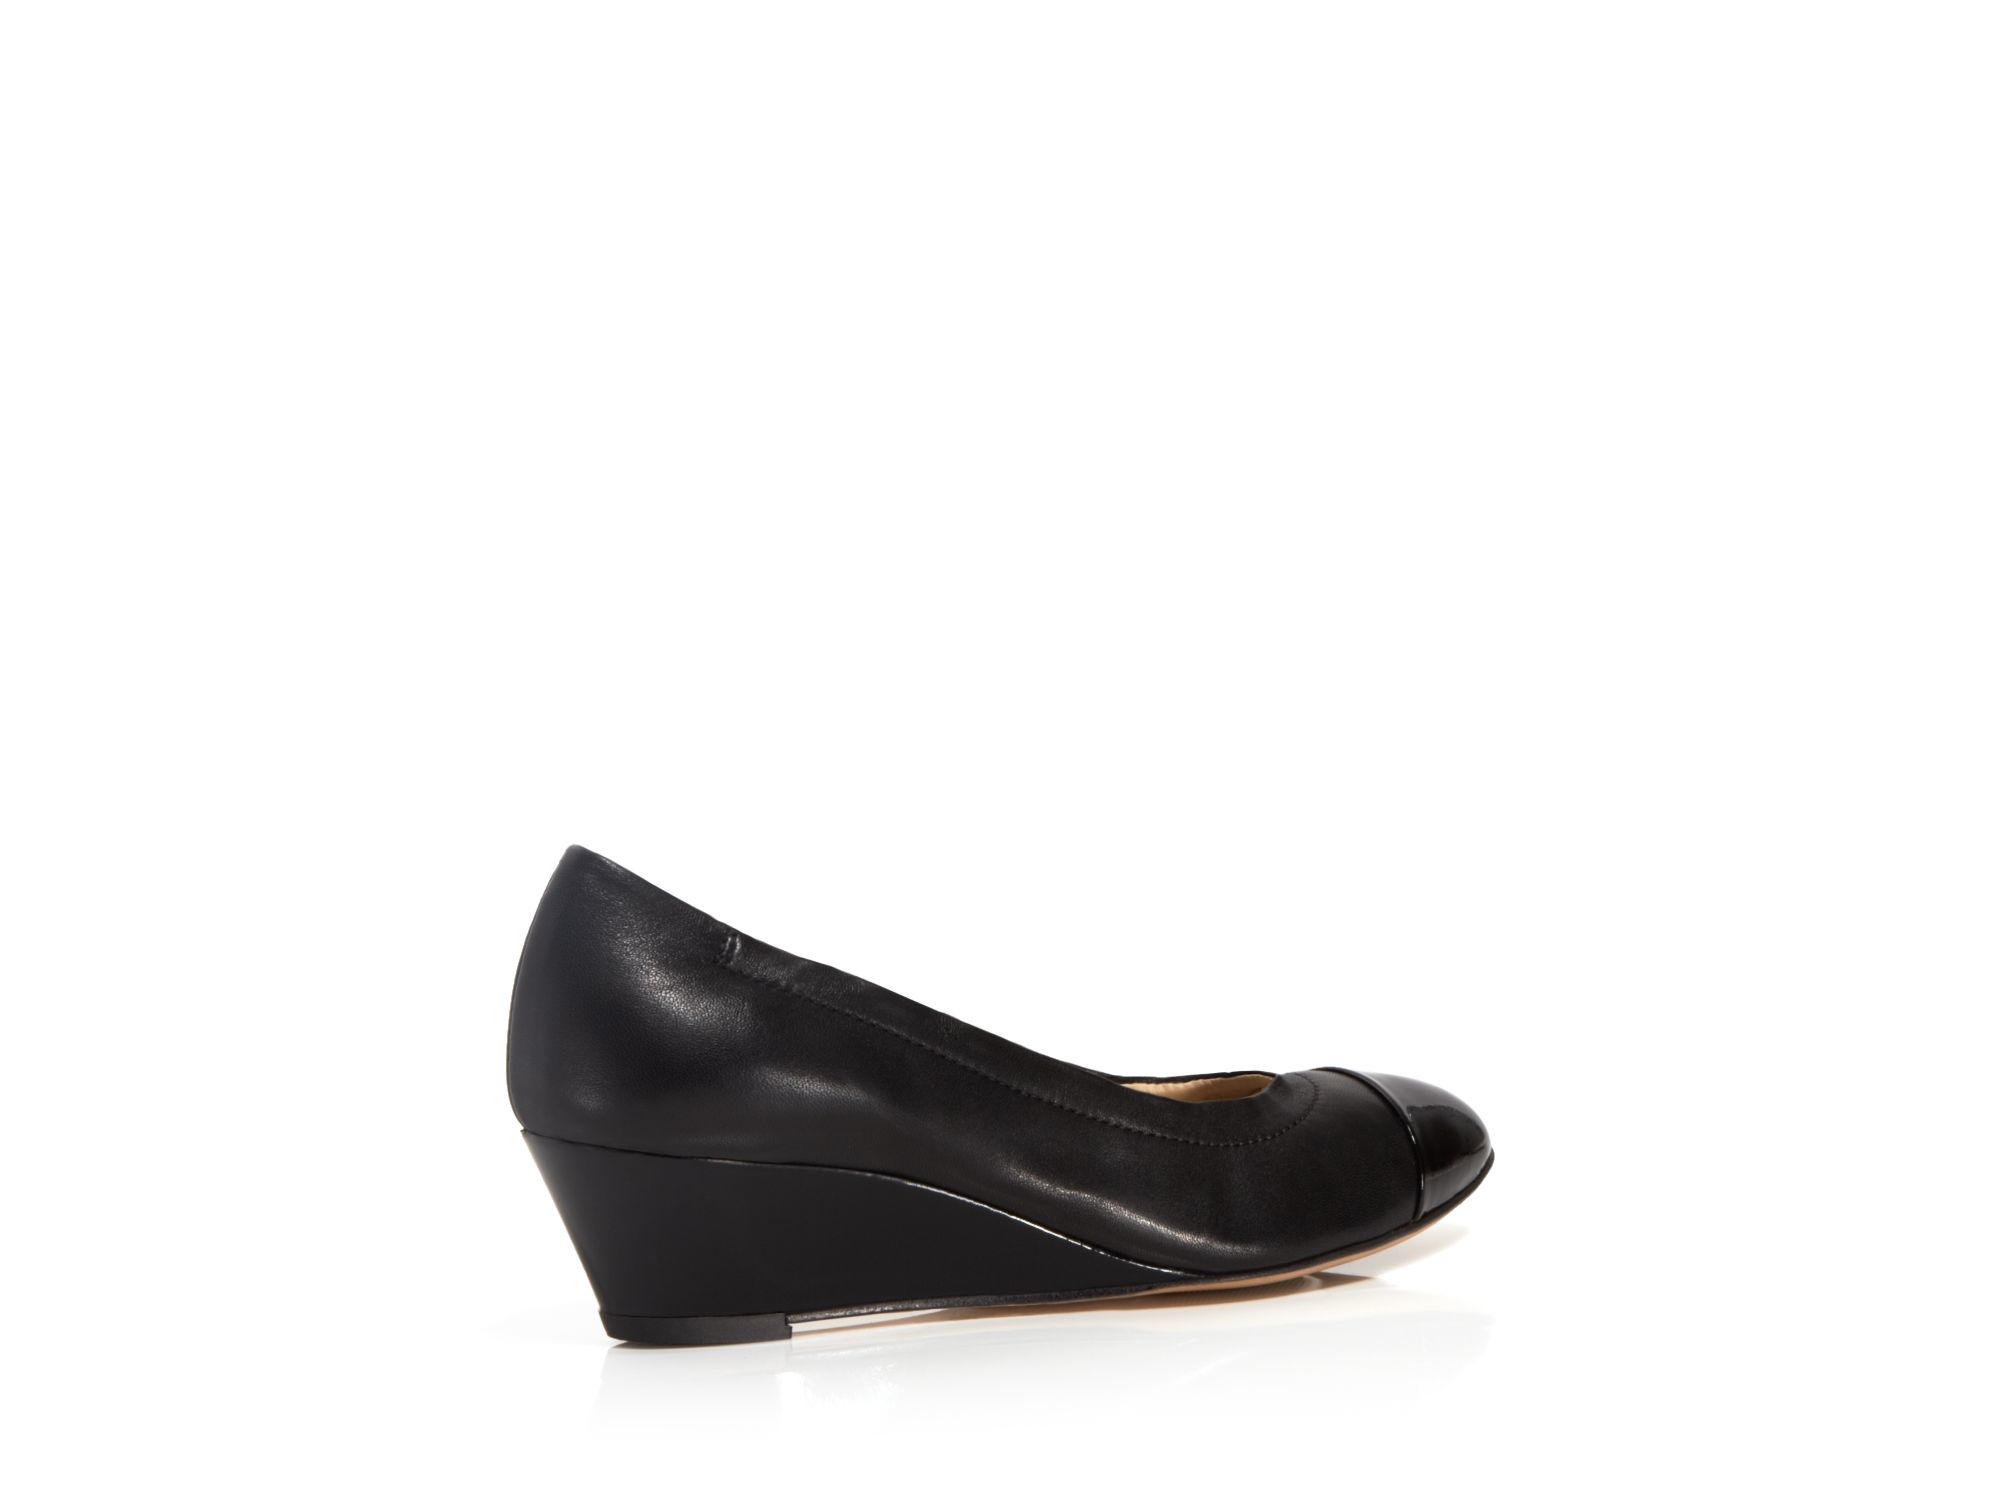 AGL Leather Cap-Toe Wedges how much online lmoOlLIb